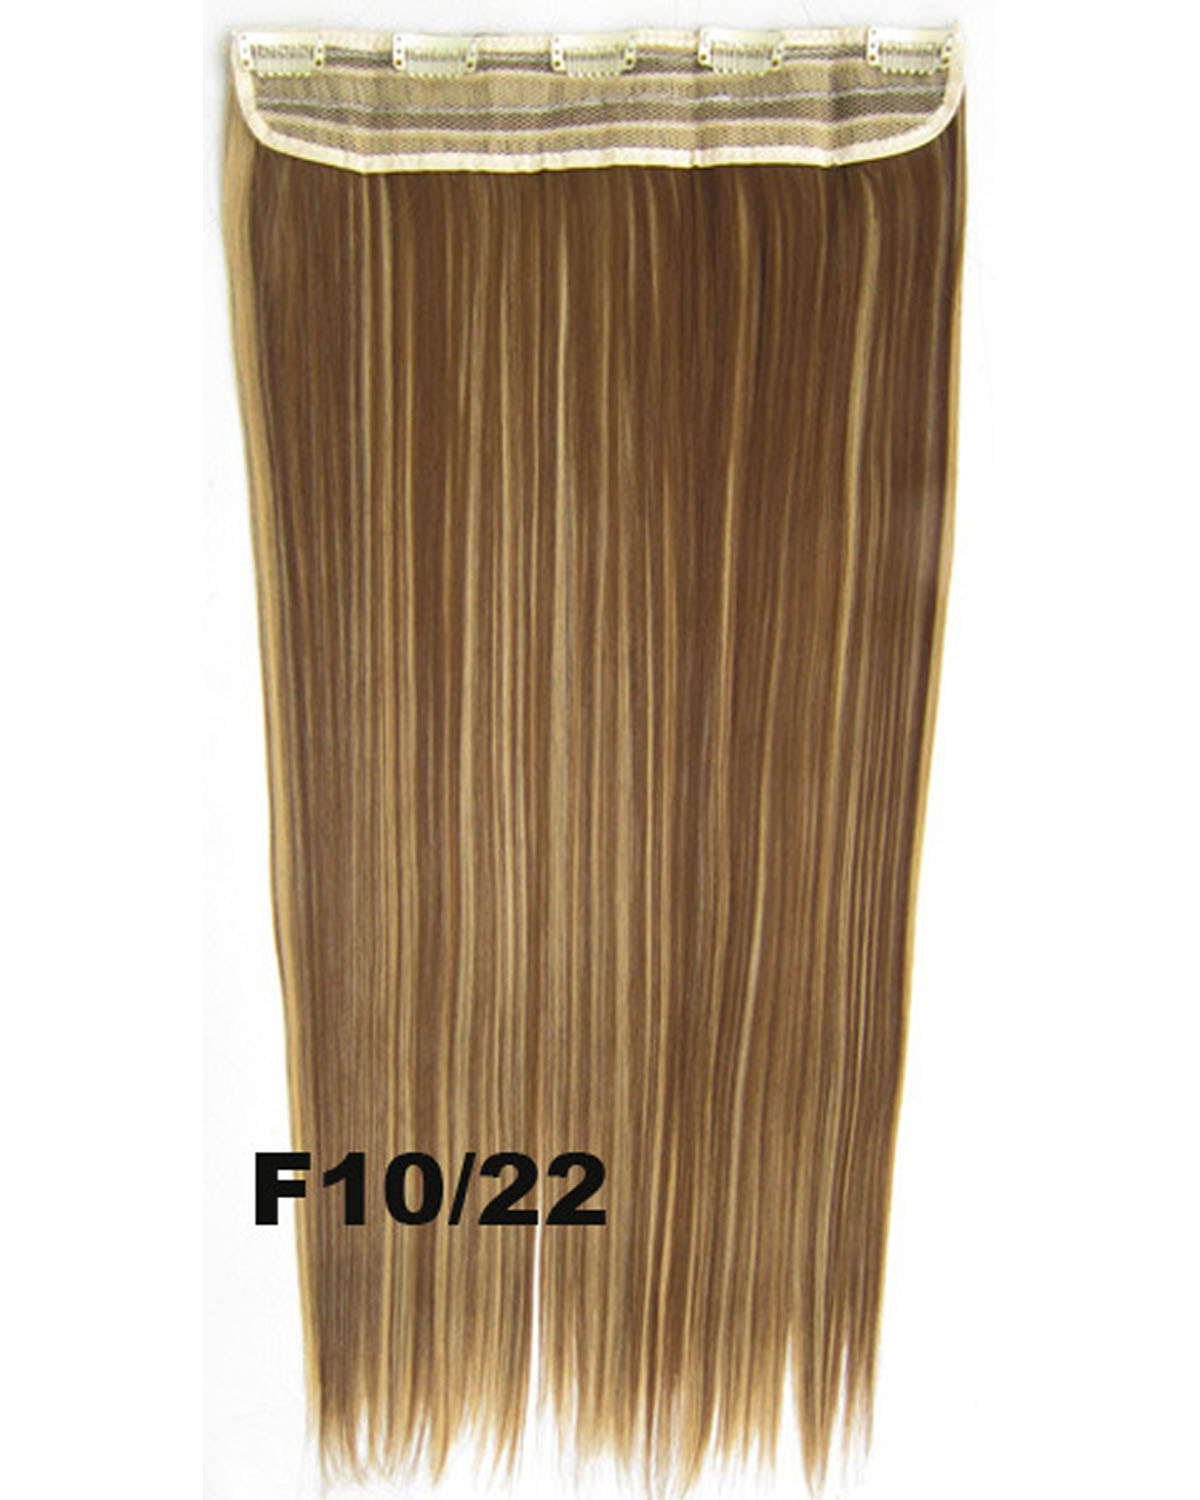 24 Inch Female First-class Long and Straight One Piece 5 Clips Clip in Synthetic Hair Extension  F10/22